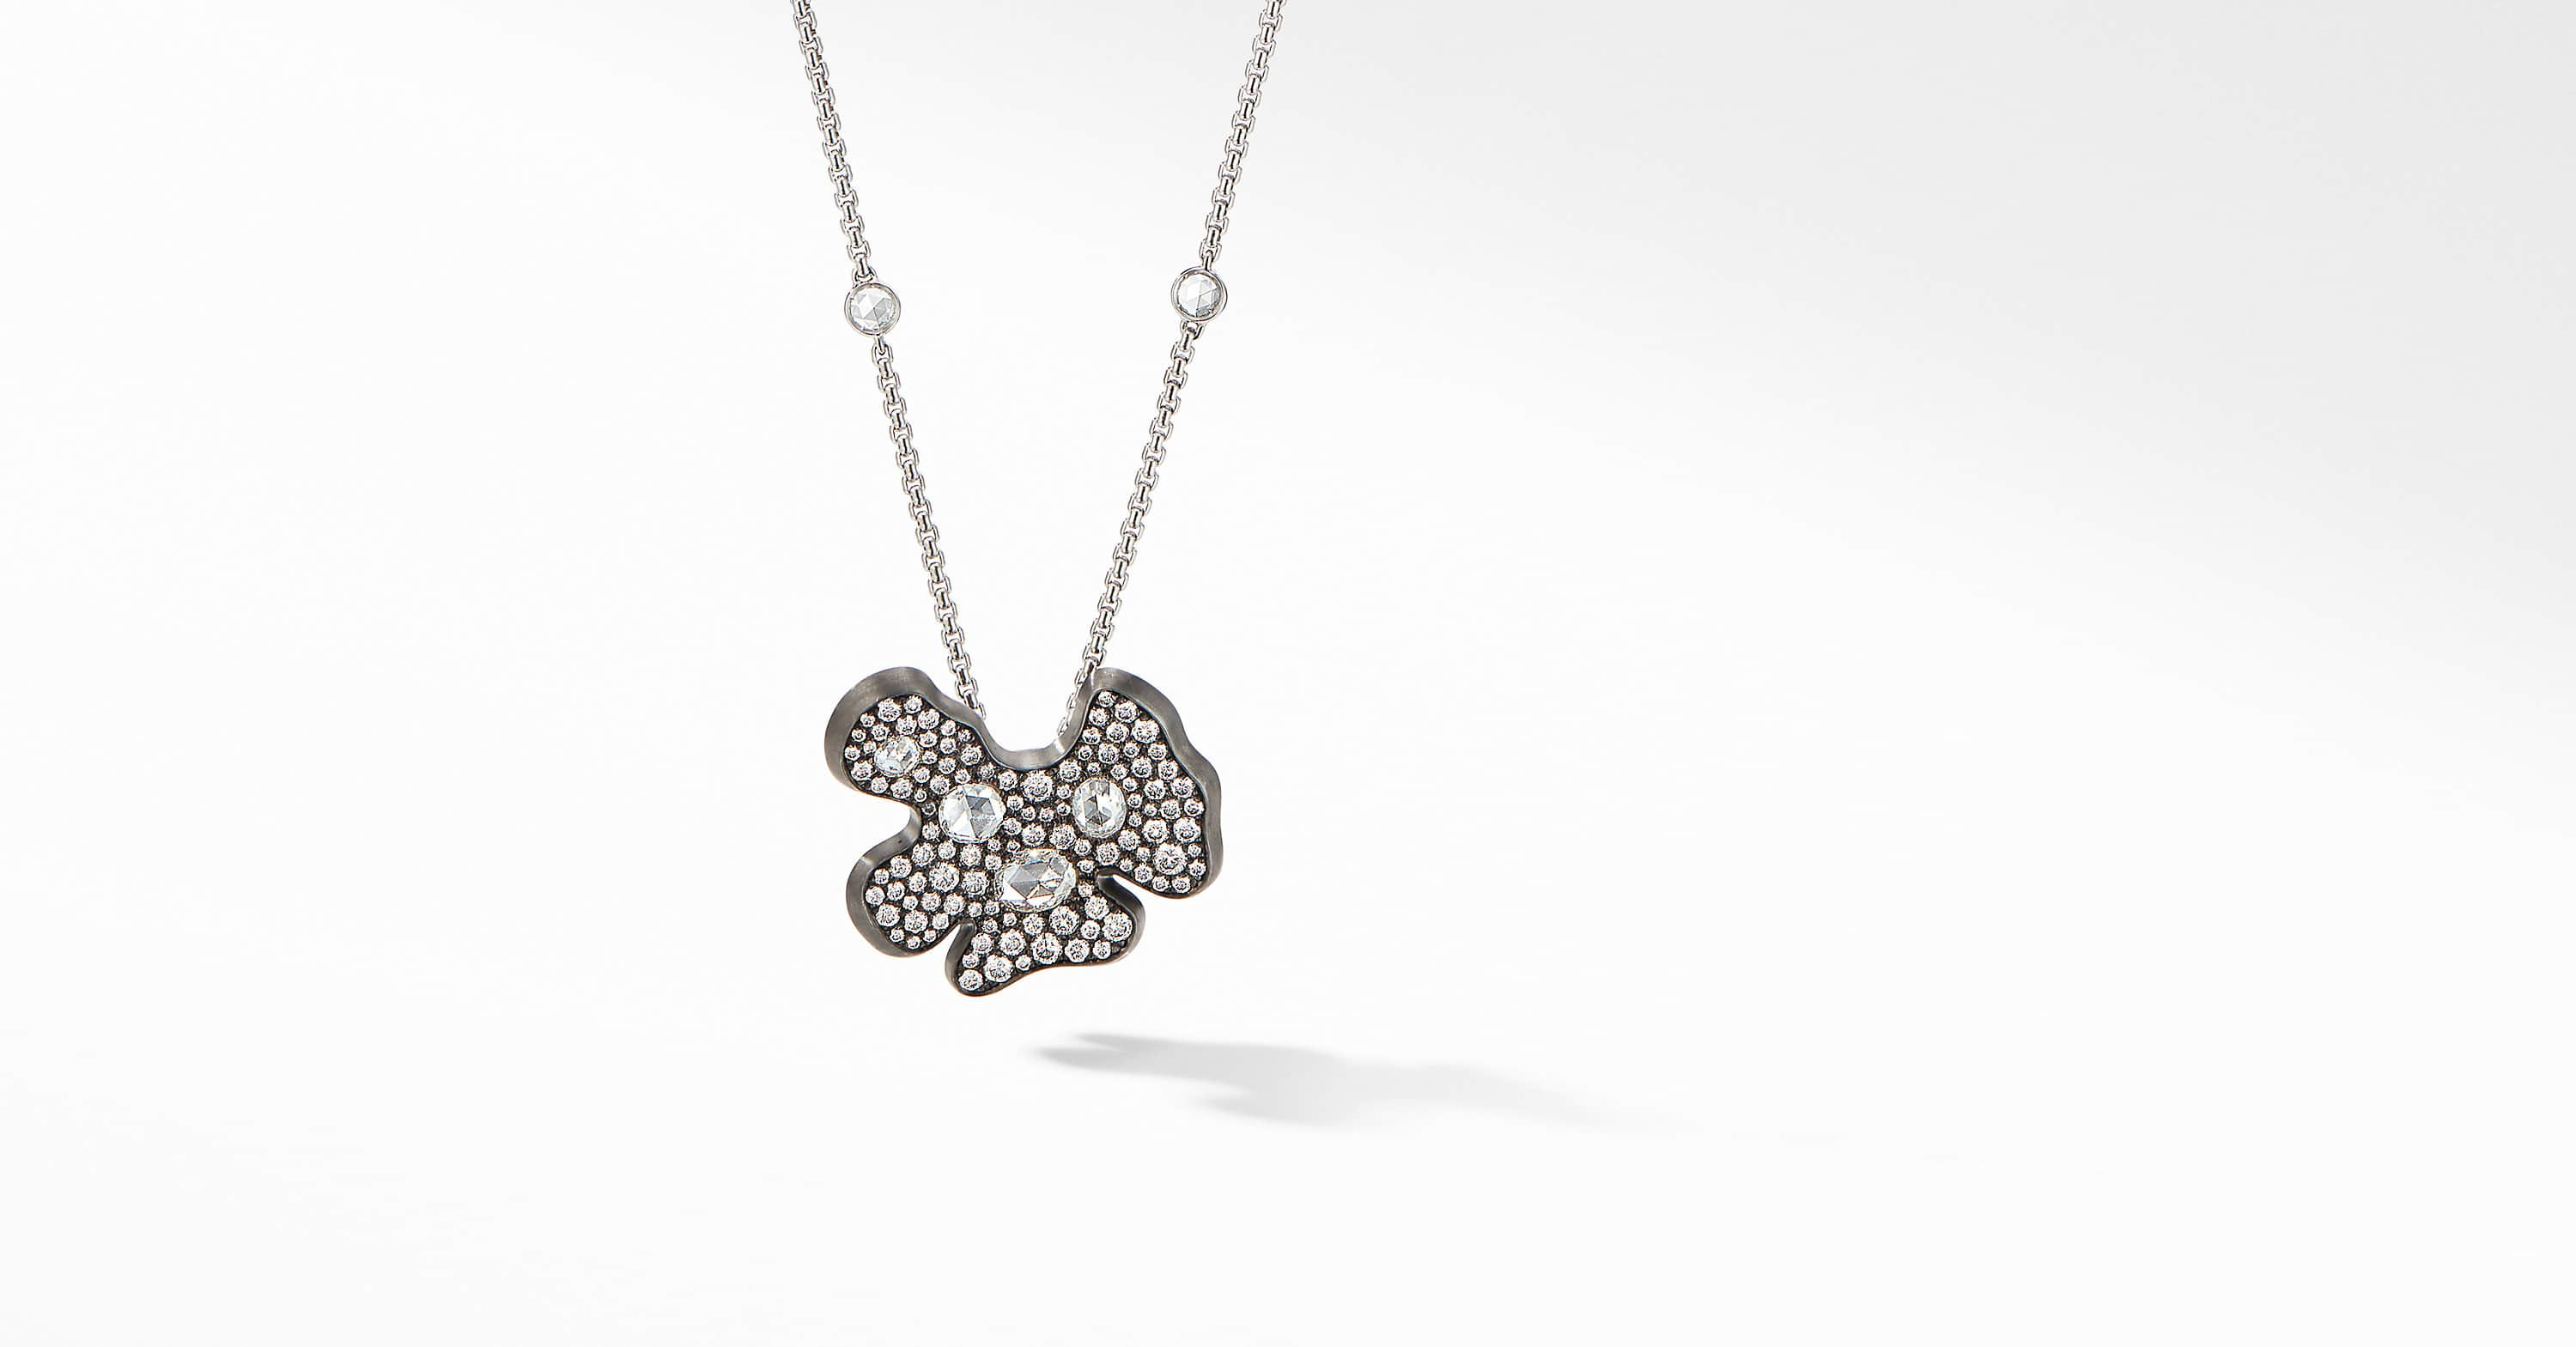 Night Petals Pendant in White Gold with Diamonds